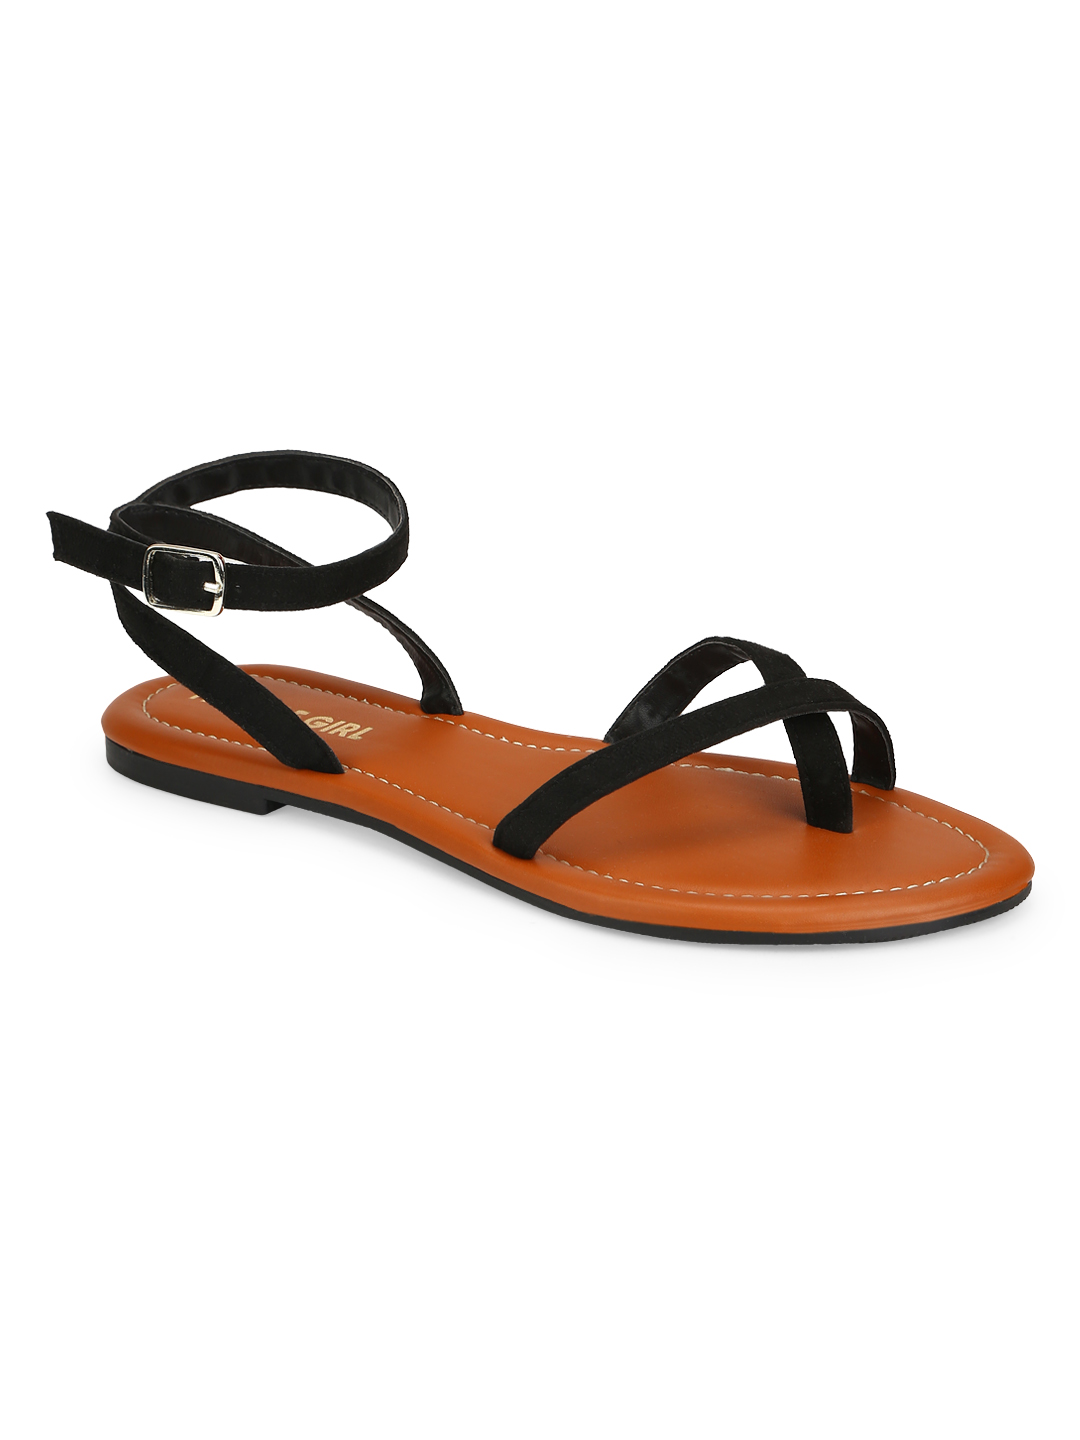 Truffle Collection | Truffle Collection Black Suede Buckle Strap Sandals